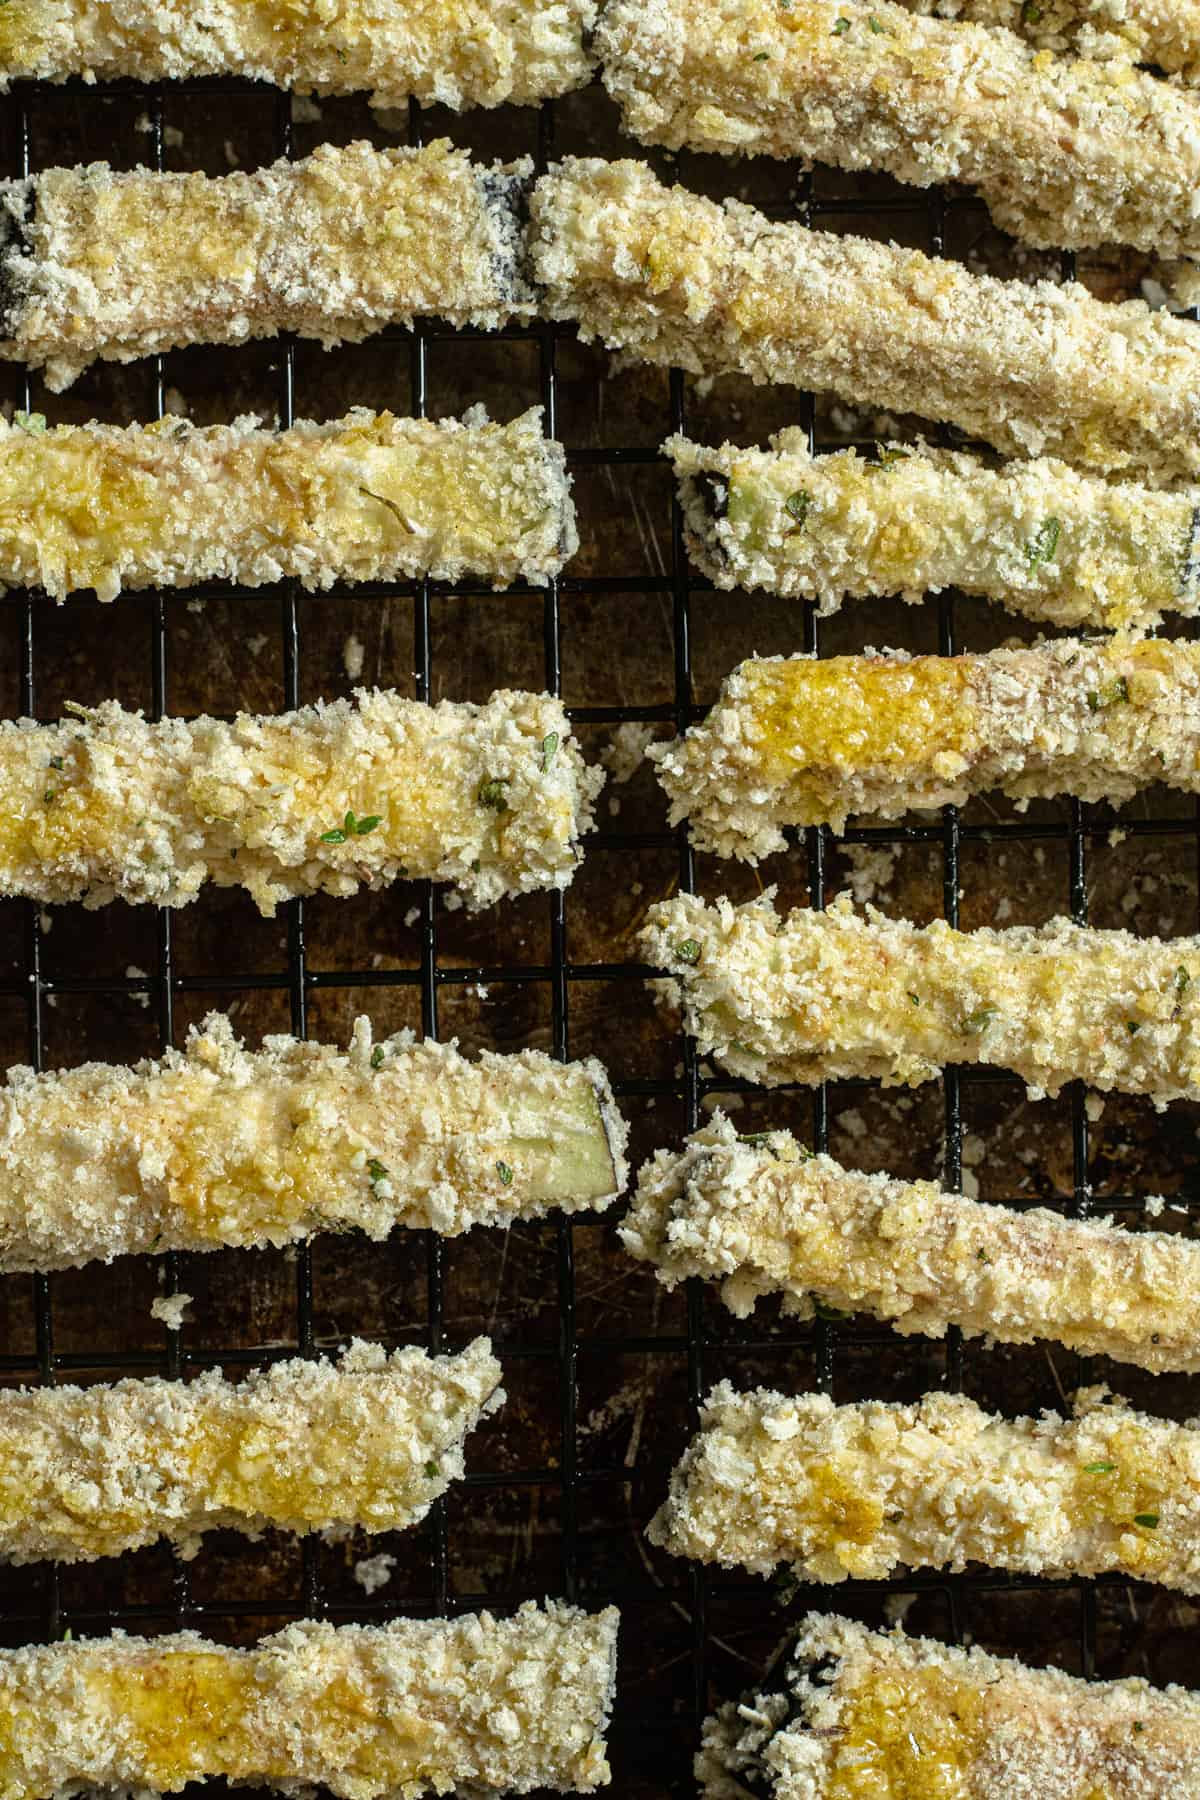 unbaked eggplant fries ready for cooking